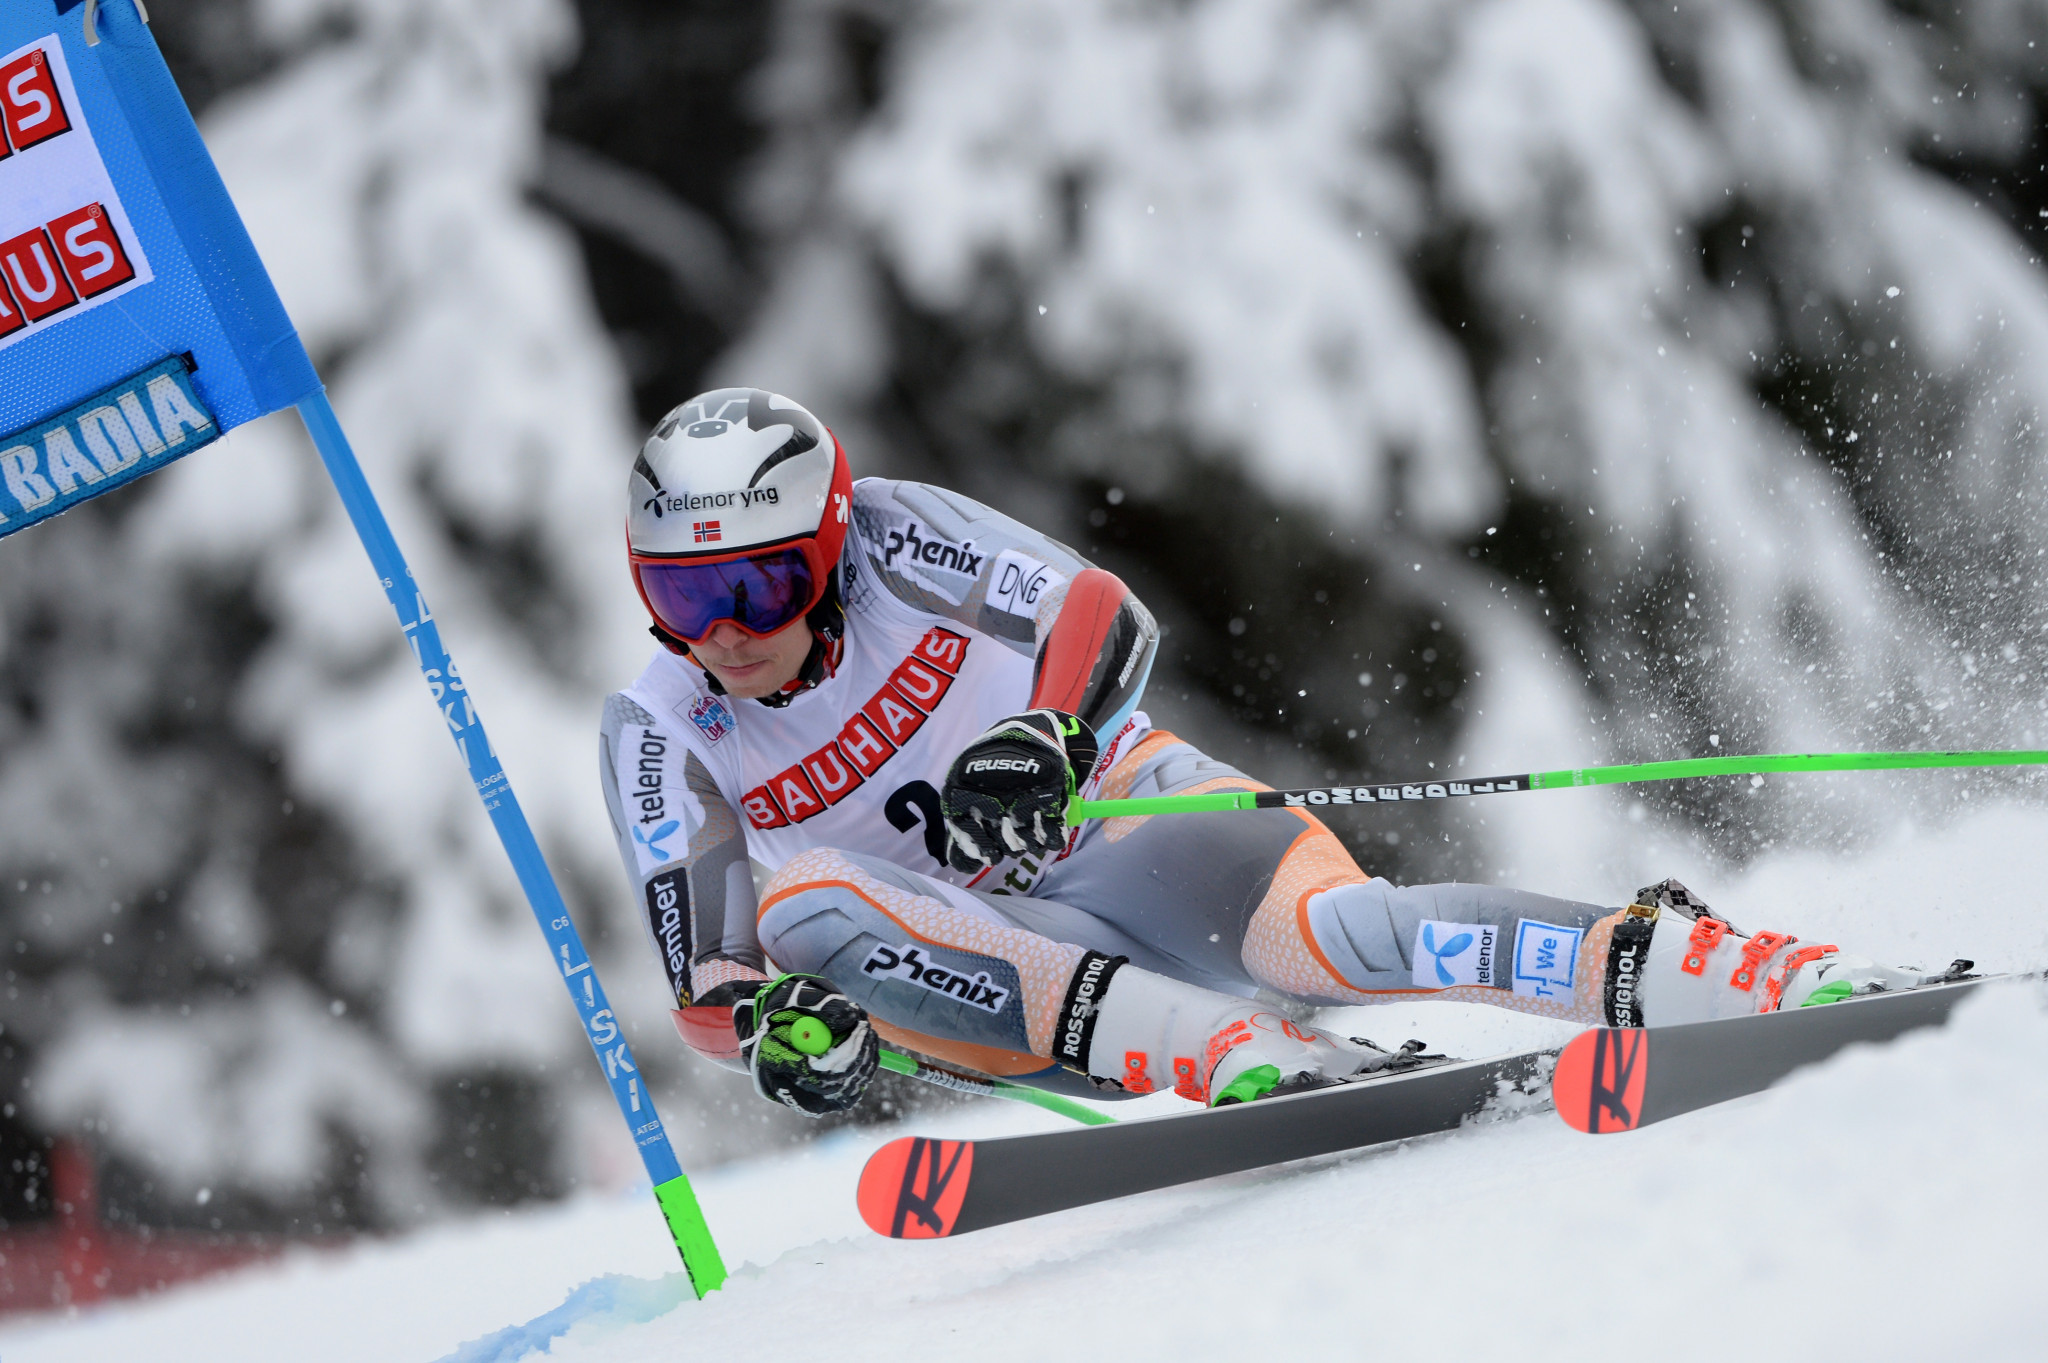 Henrik Kristoffersen leads the overall standings after his victory at Alta Badia ©Getty Images